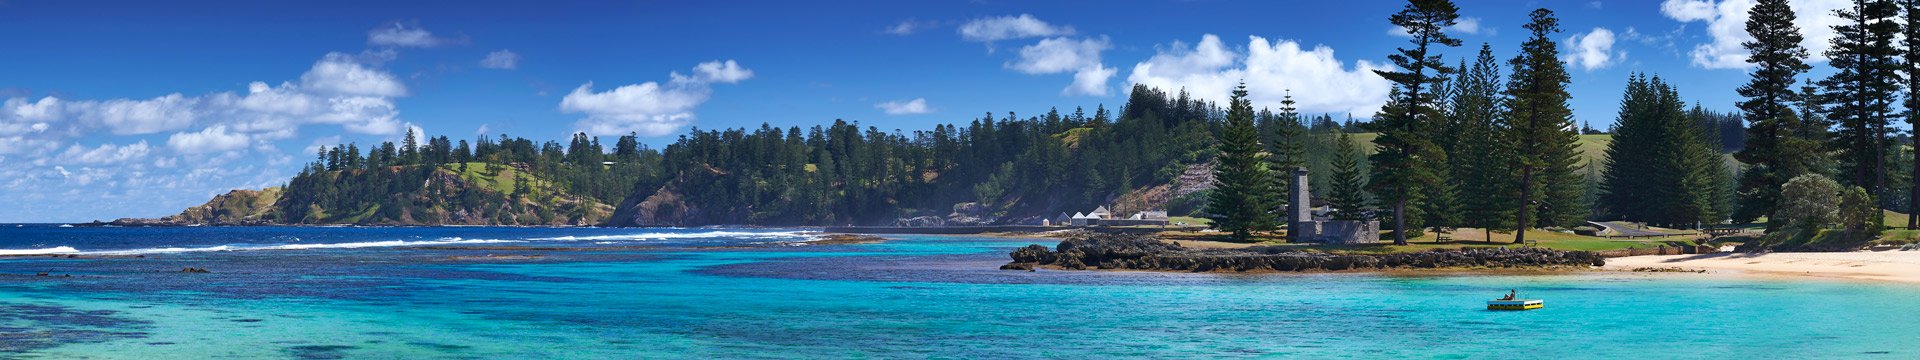 COVID 19 - Travel Restrictions & Information for Norfolk Island